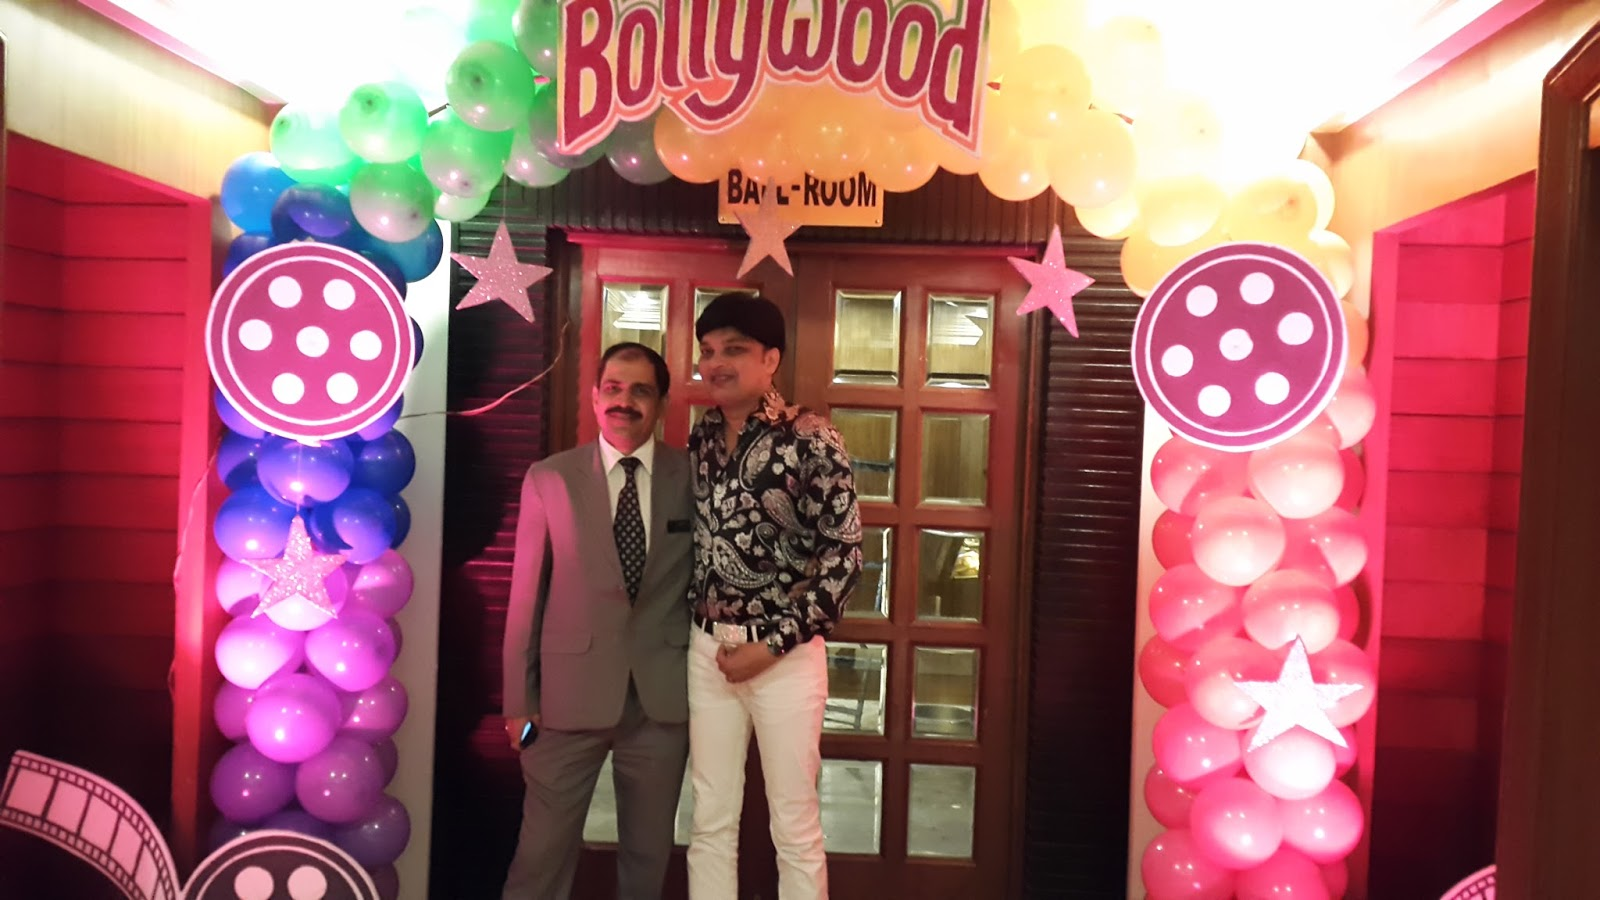 We All Are Big Fans Of Bollywood Movies And Its Culture There Can Be No Better Theme For A Birthday Party Than Any Age Group